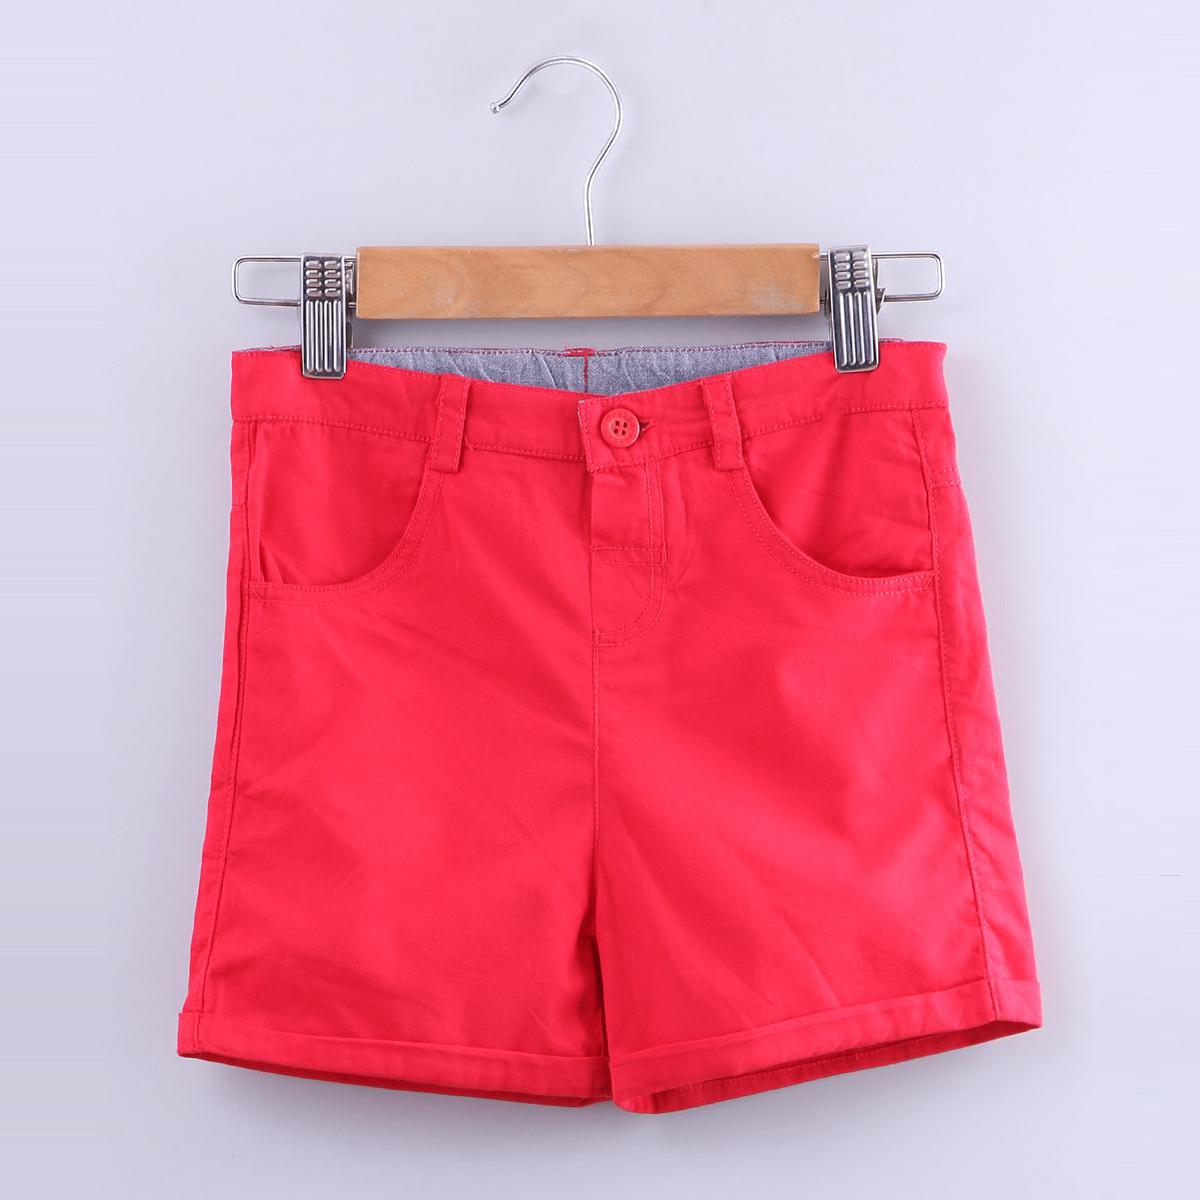 Beebay - Red Colored Tomato Chinos Cotton Shorts For Boys